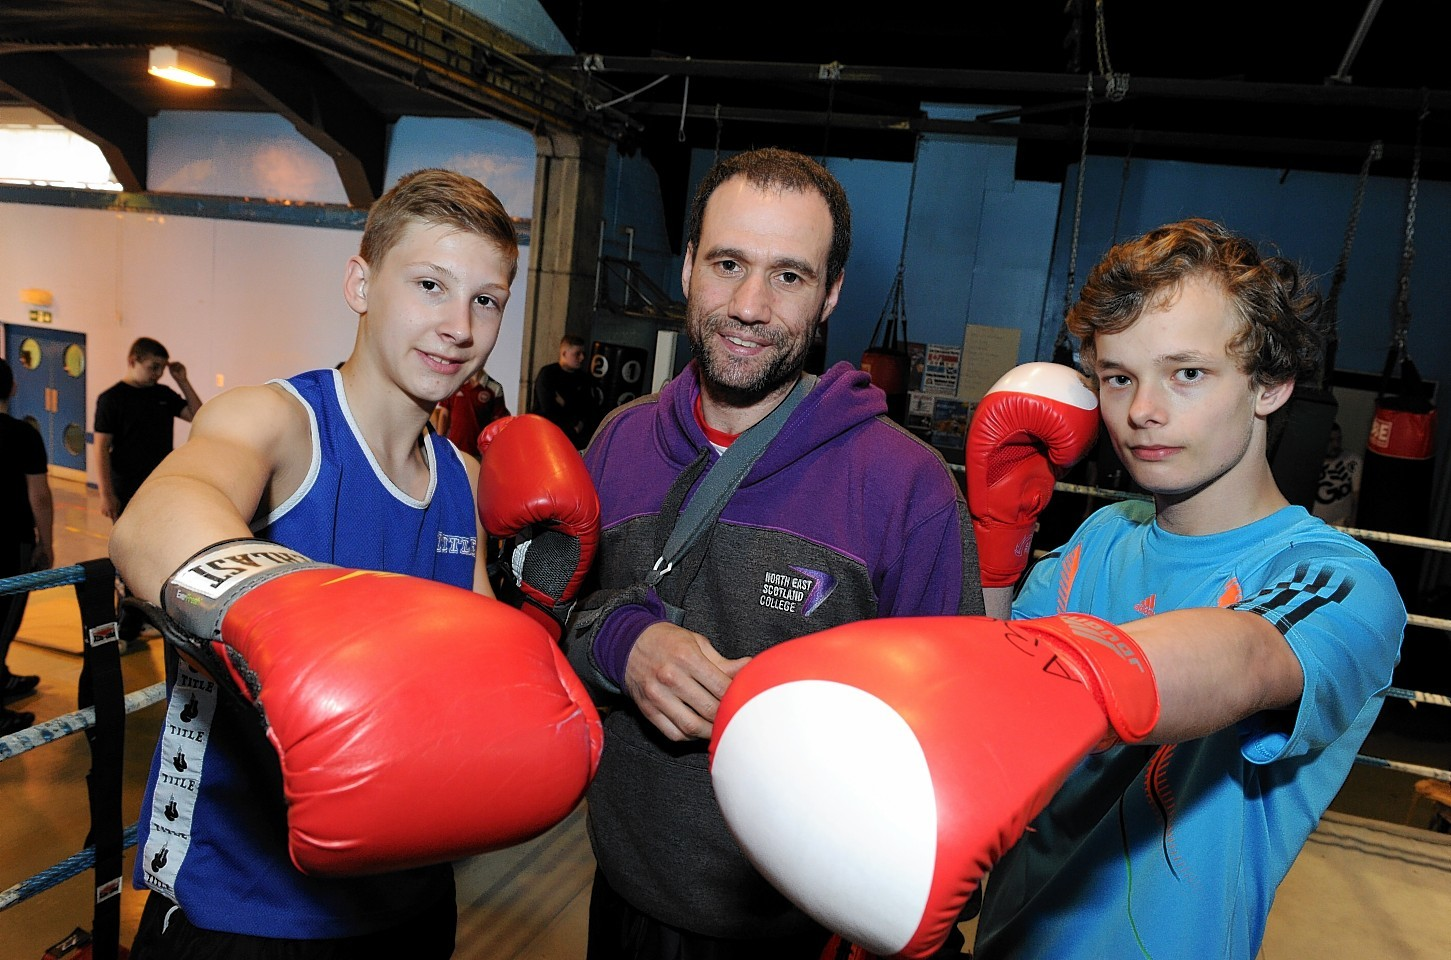 (FROM LEFT) Members of Aberdeen Boxing Club Filip Kodrzycki, head coach Leroy Smith and Mads Bendixen at Cummings Park Centre which has reopened allowing the club to start up again after two years of not having a place to train.  Picture by KEVIN EMSLIE